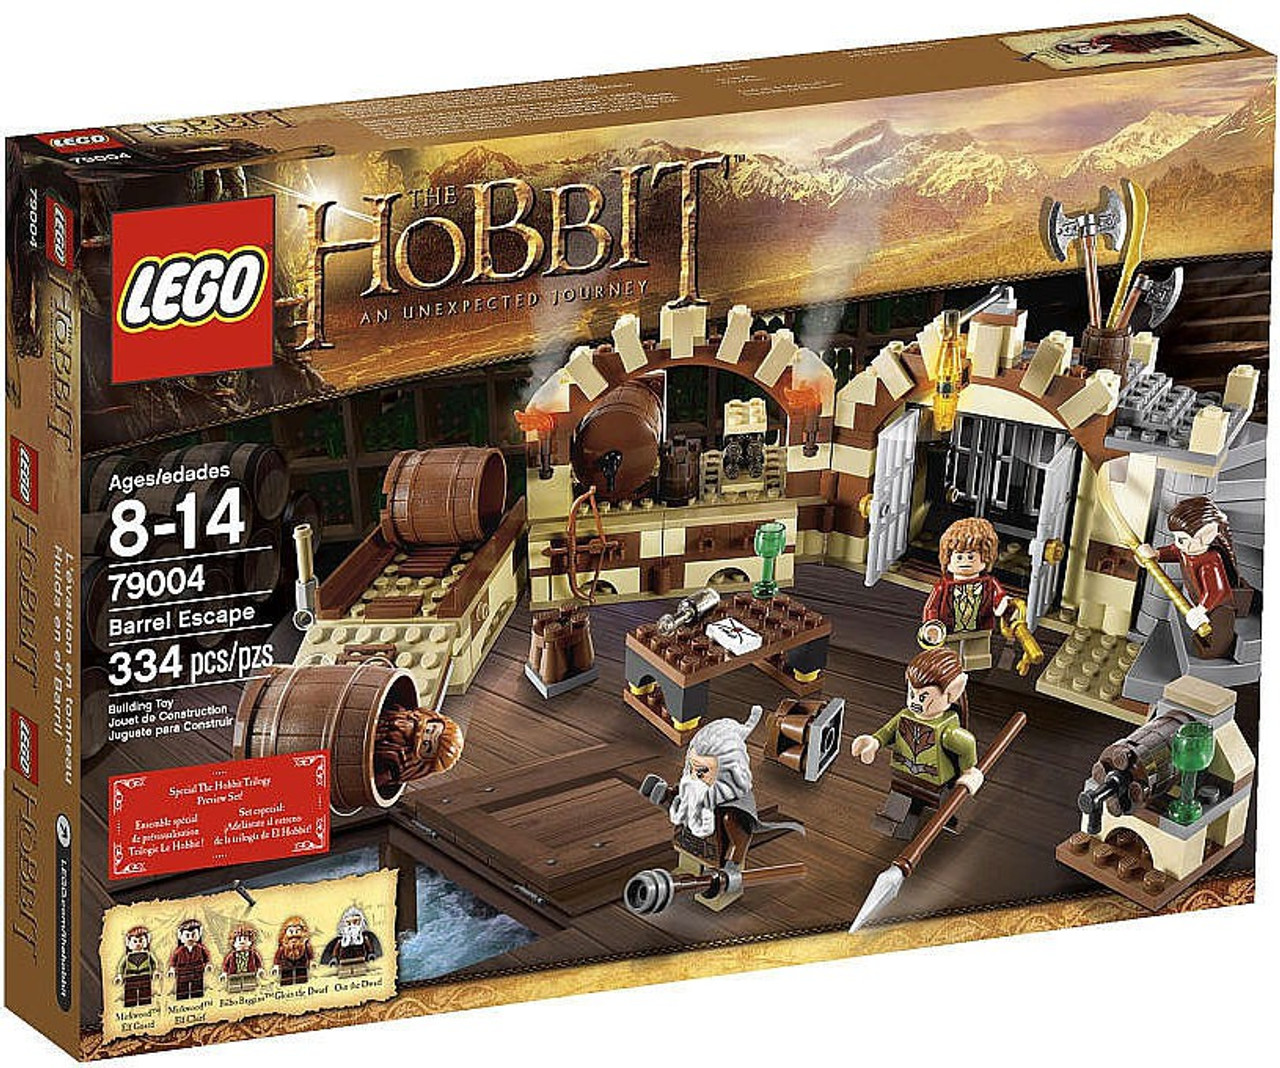 Mirkwood Elf Chief Set 79004 Lego Lord Of The Rings The Hobbit